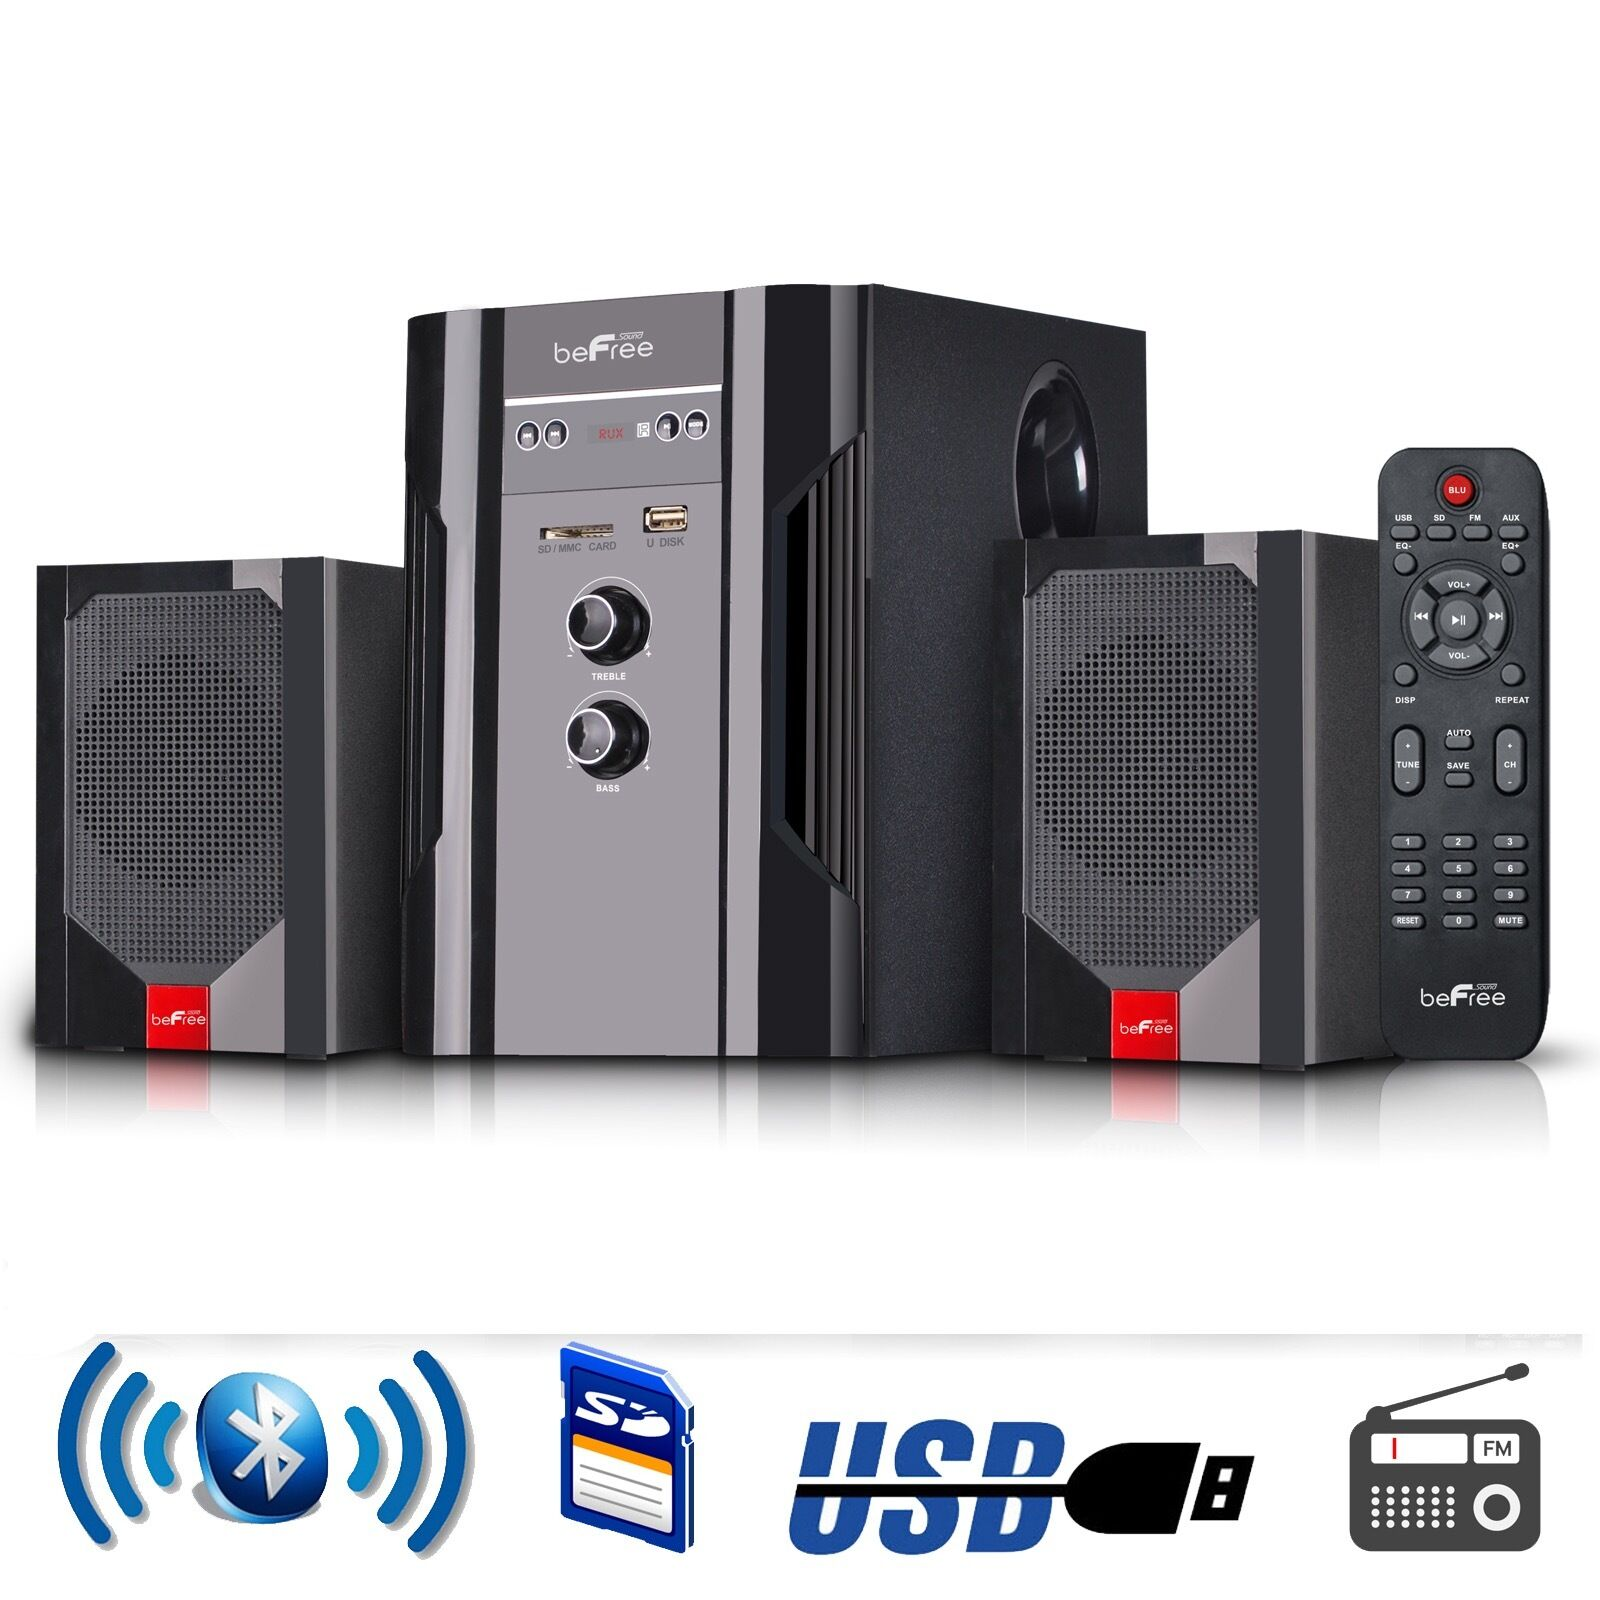 2.1ch BLUETOOTH SURROUND SOUND HOME STEREO SPEAKER HOME THEATER SYSTEM USB MP3